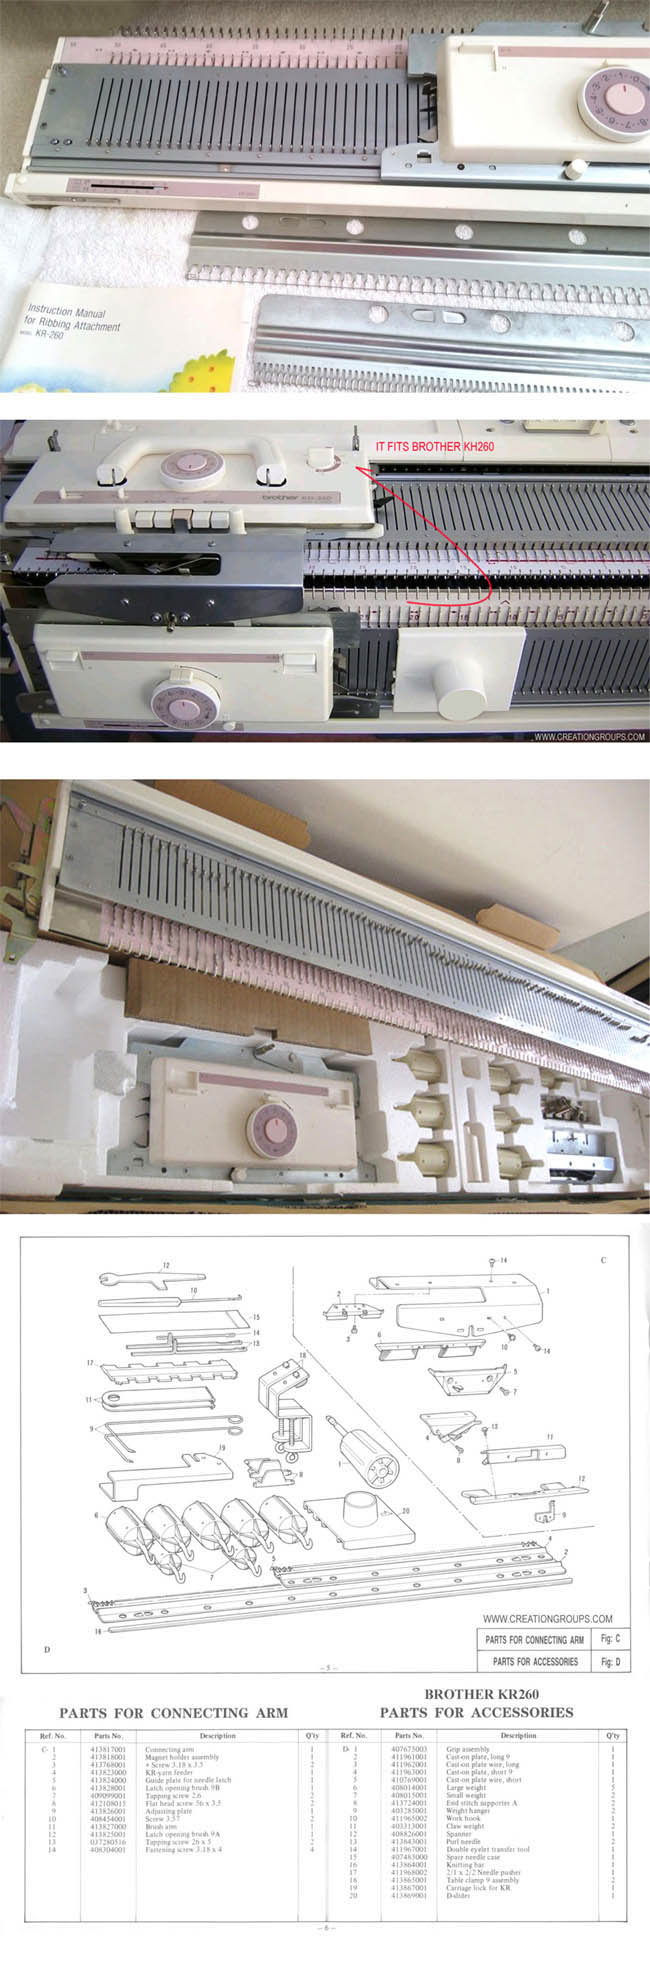 Yarn Feeder for Brother Knitting machine Ribber machine KR260